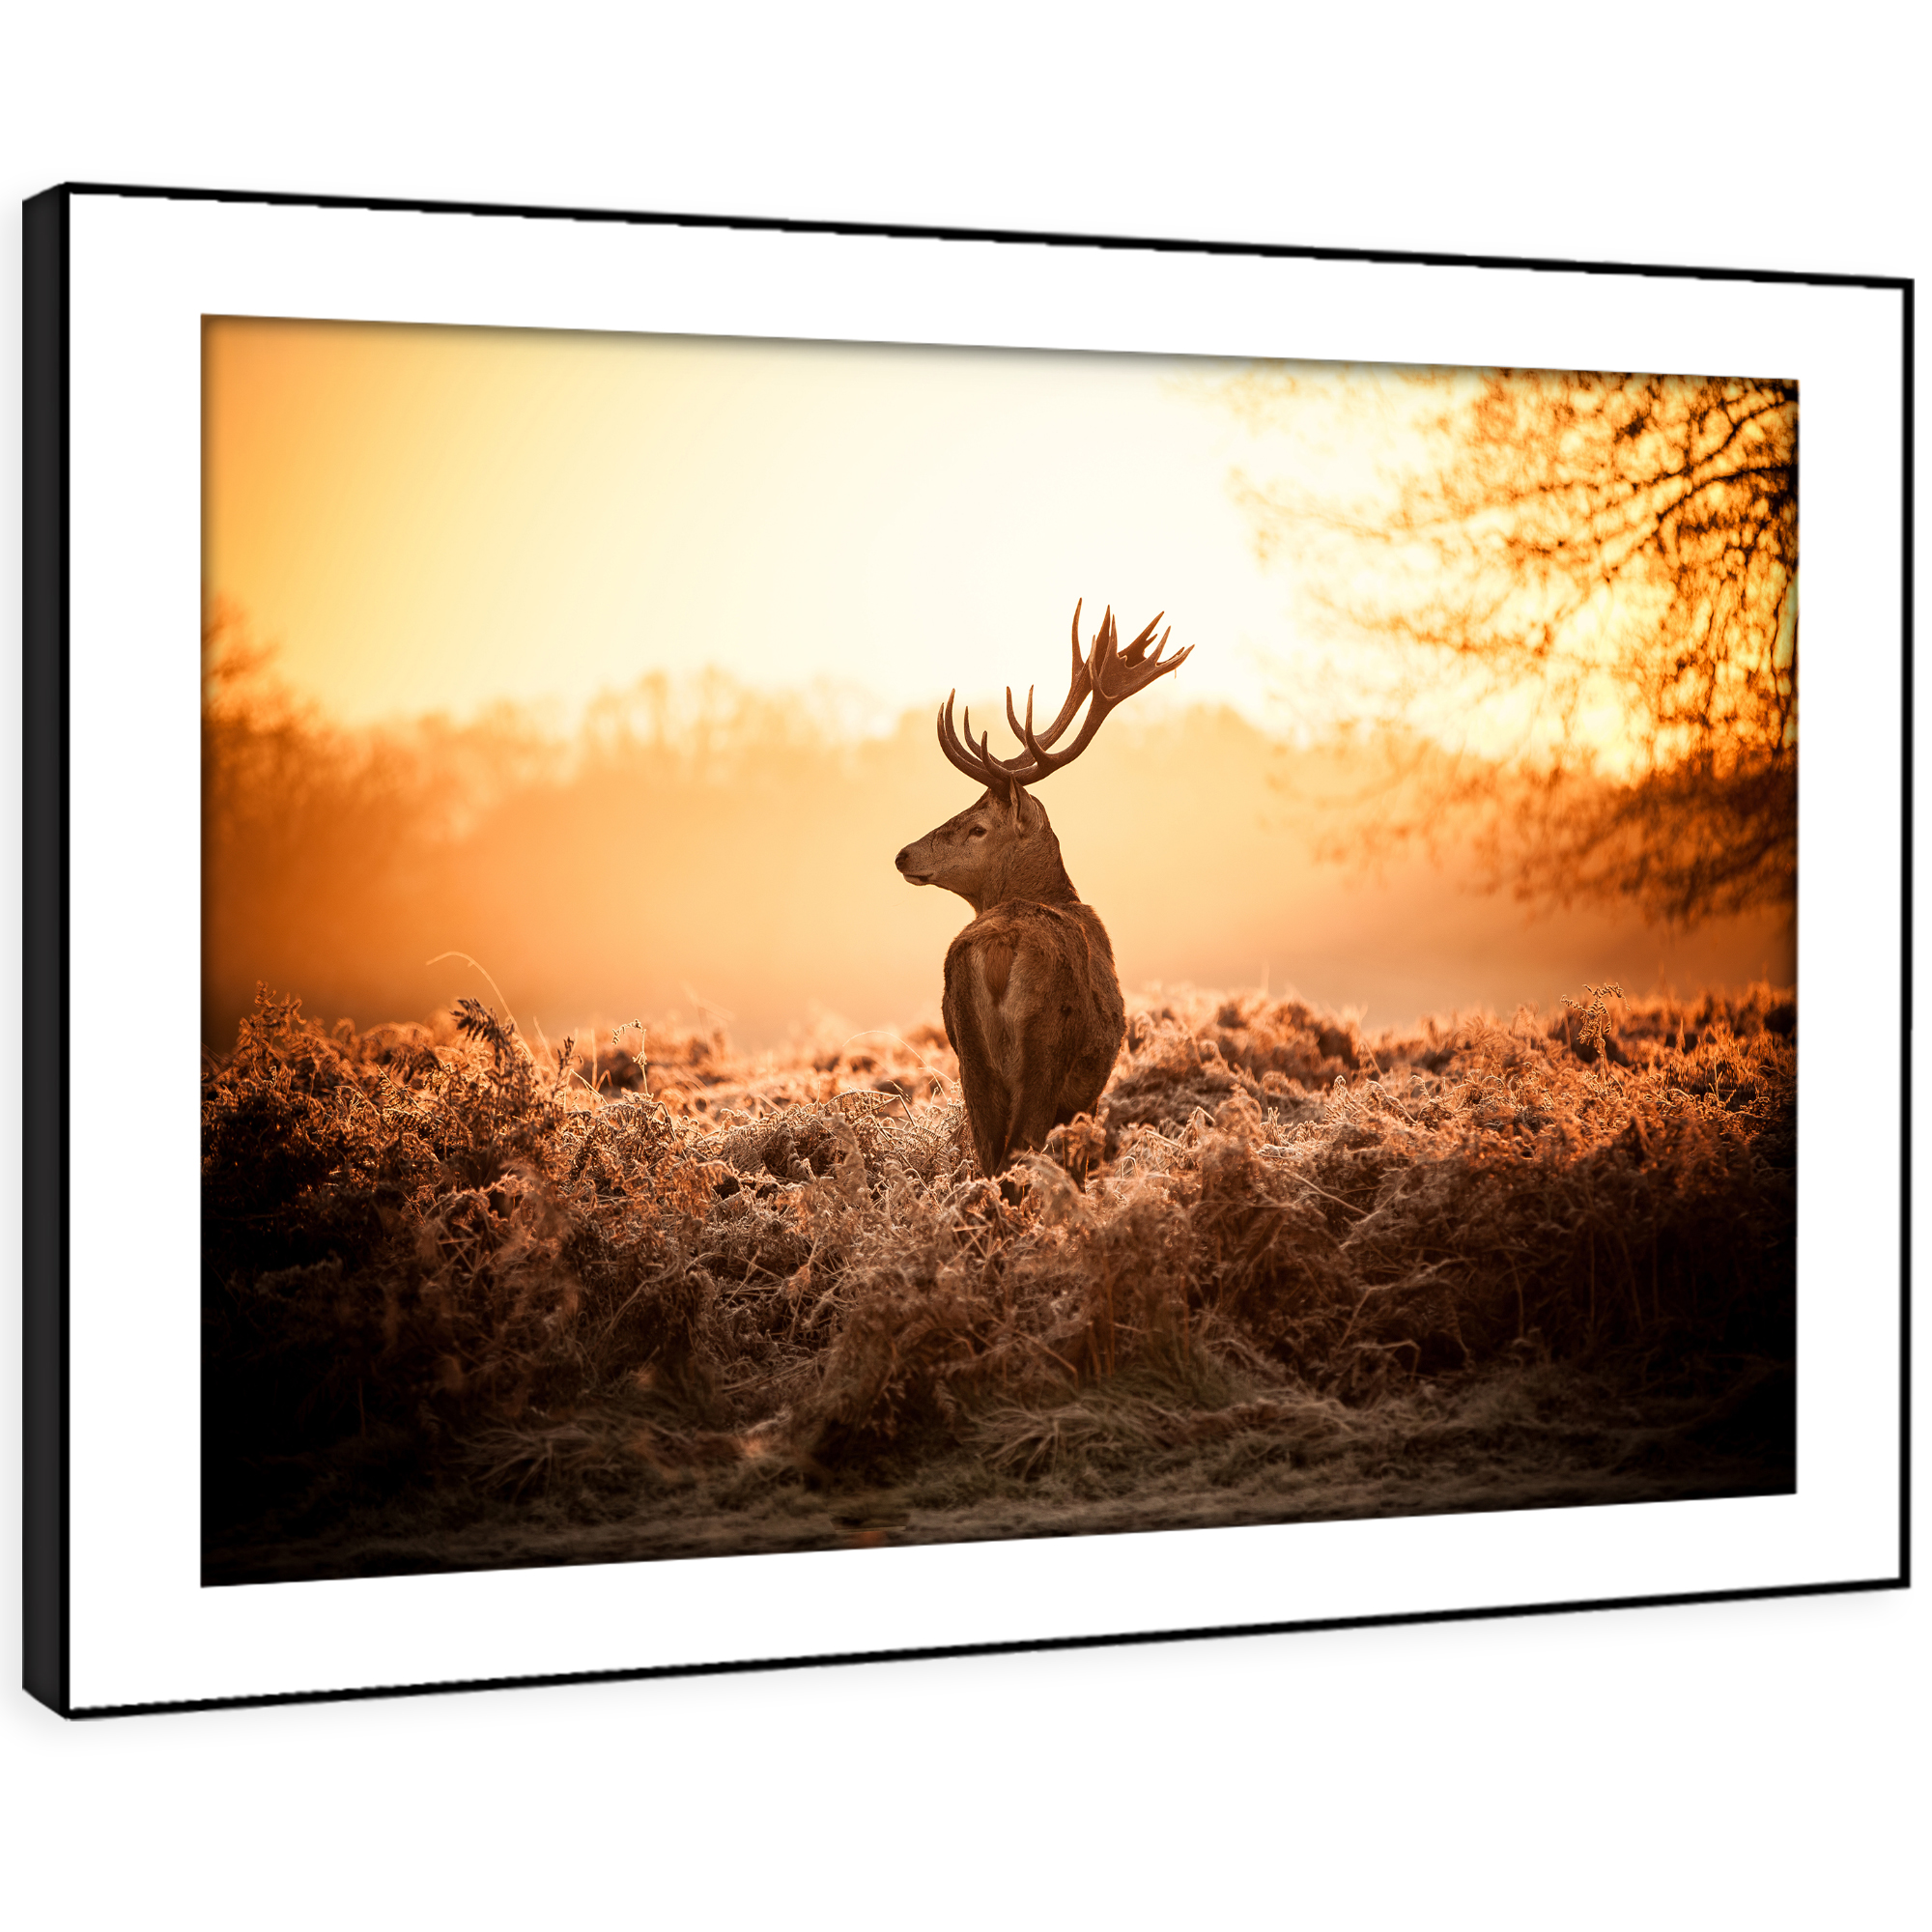 A571 Orange Stag Sunset Forest Funky Animal Framed Wall Art Large Picture Prints